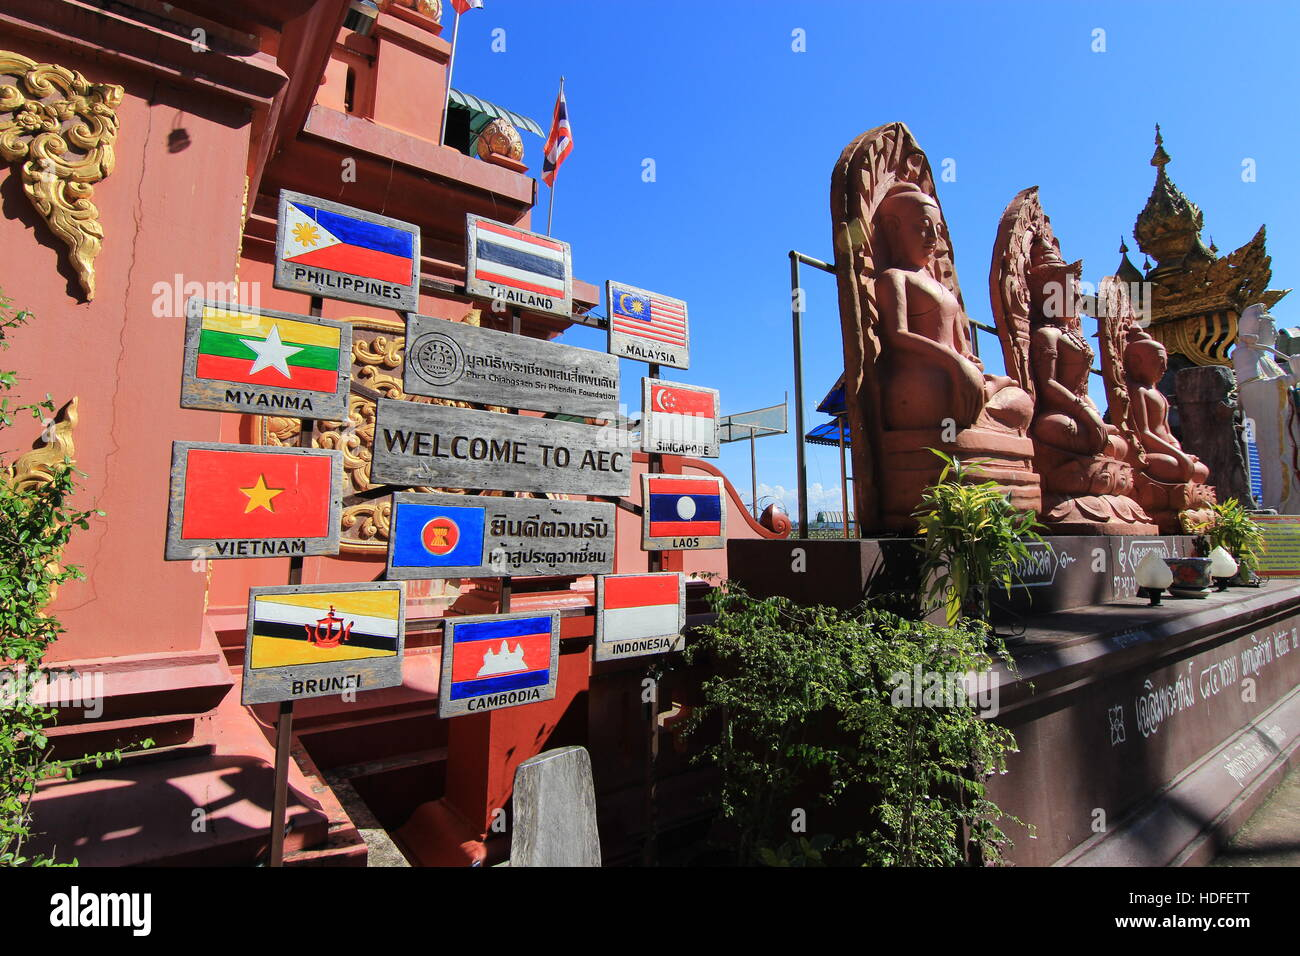 Welcome to AEC post in Golden Triangle Chiang rai, Thailand - Stock Image